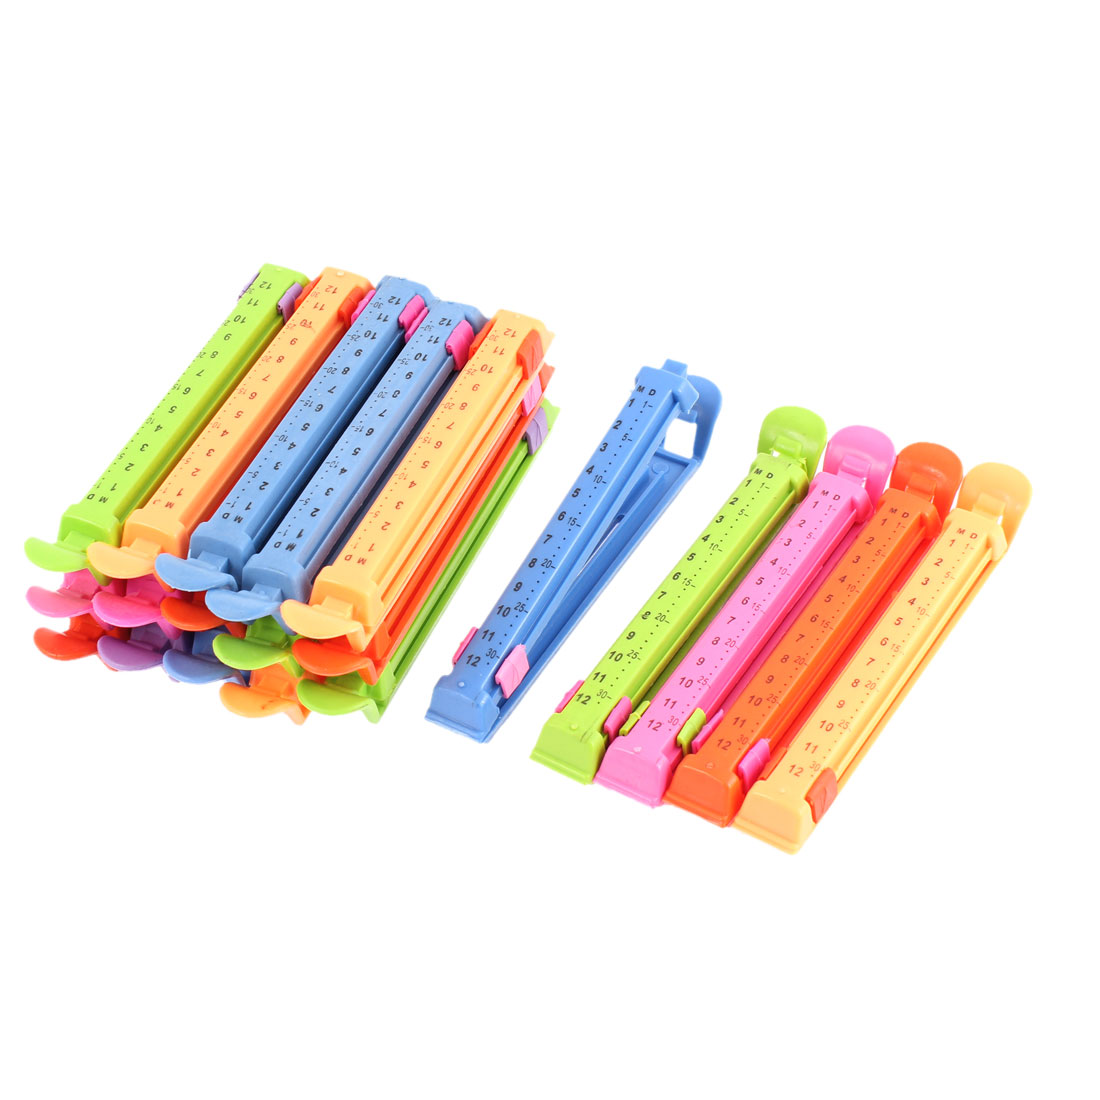 Household Plastic Date Marking Food Seal Clips Assorted Color 20 Pcs